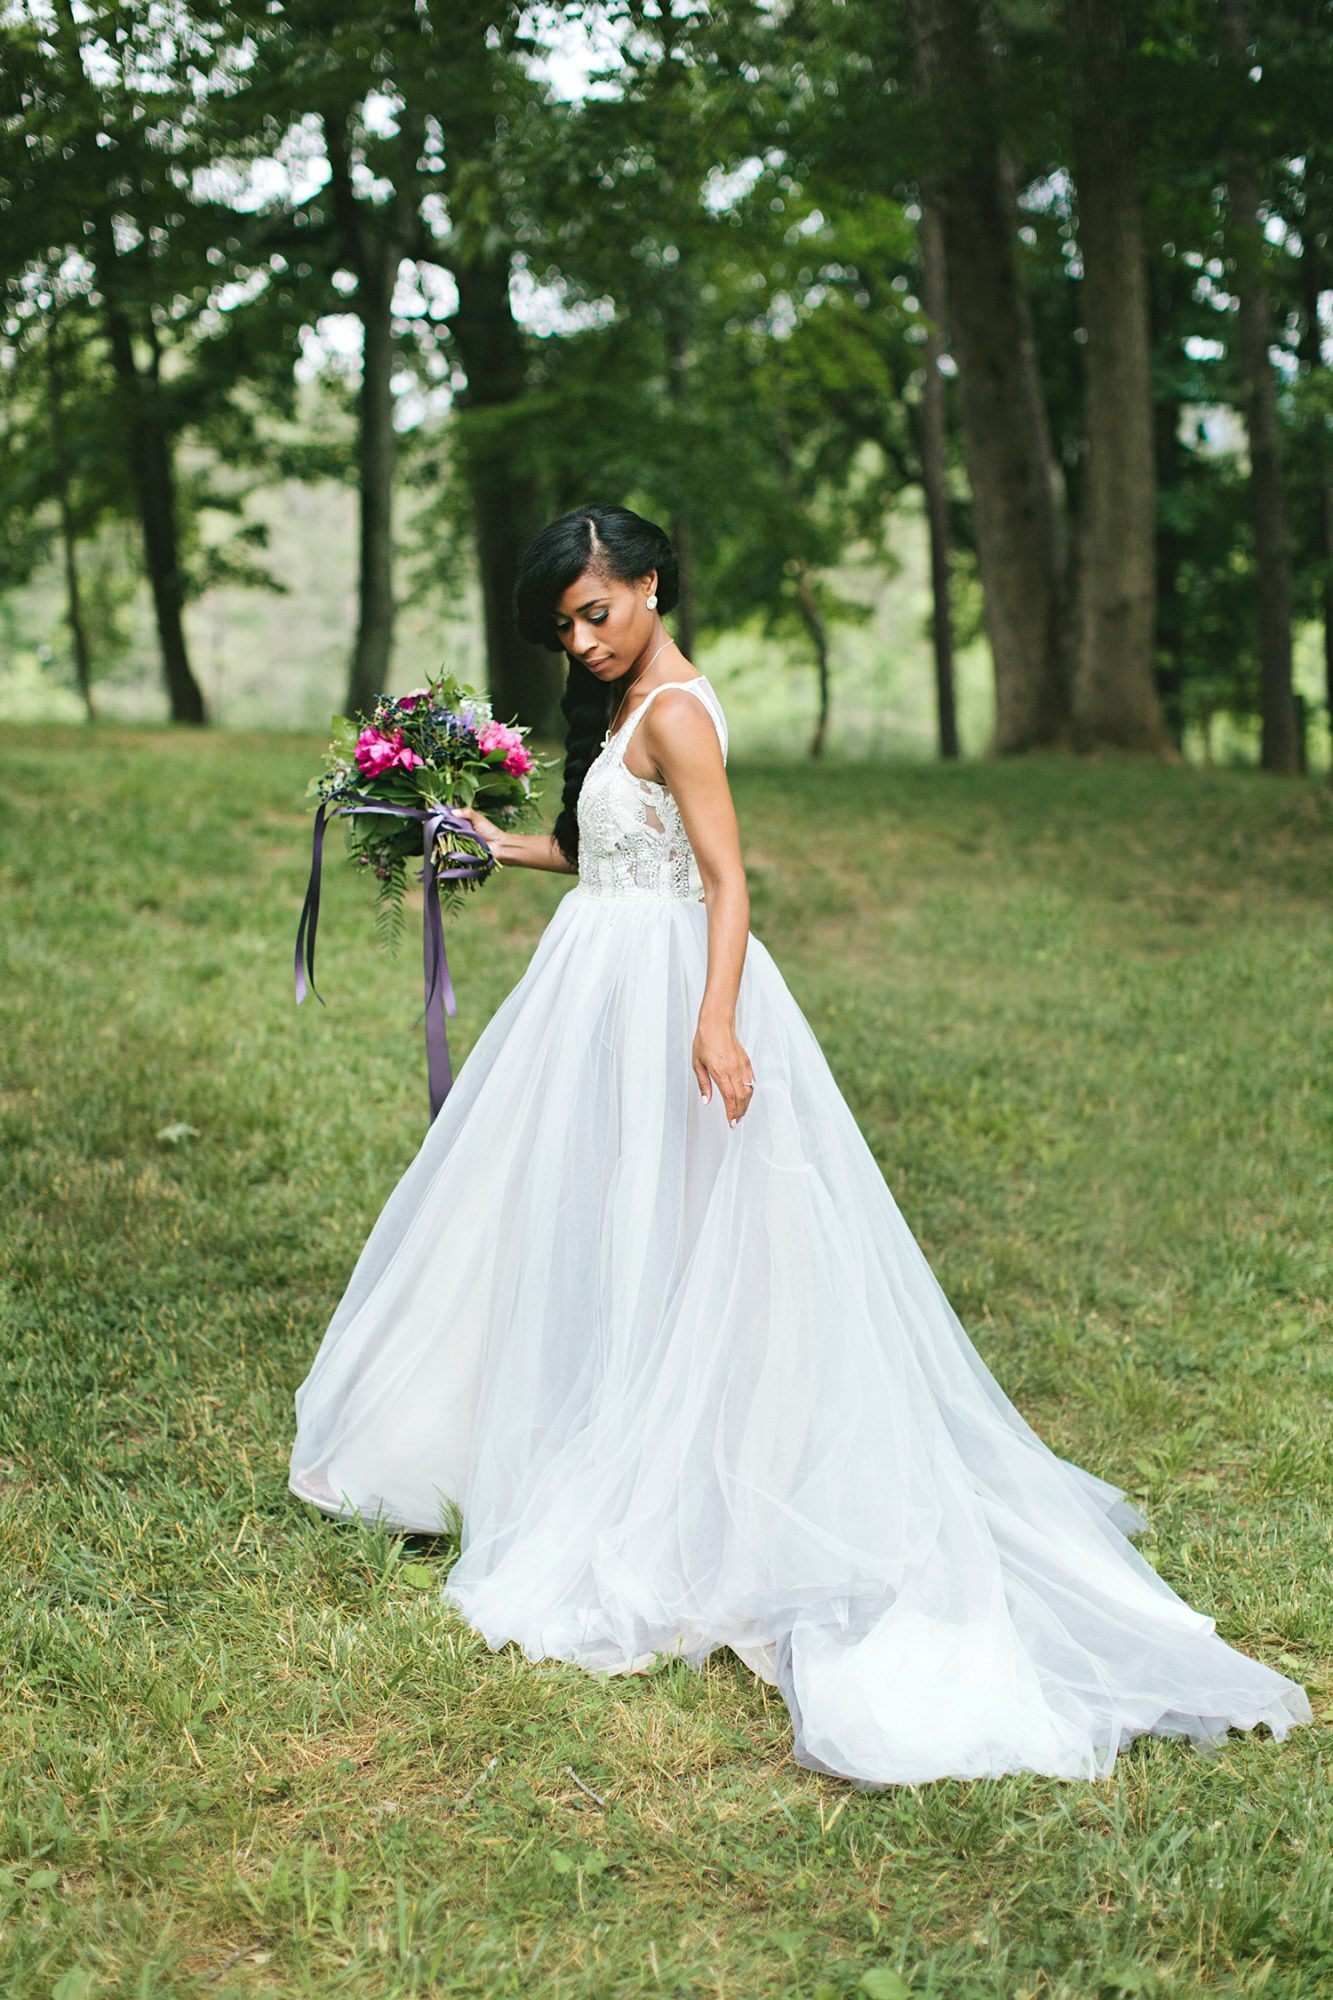 bride with v-neck dress and side braid